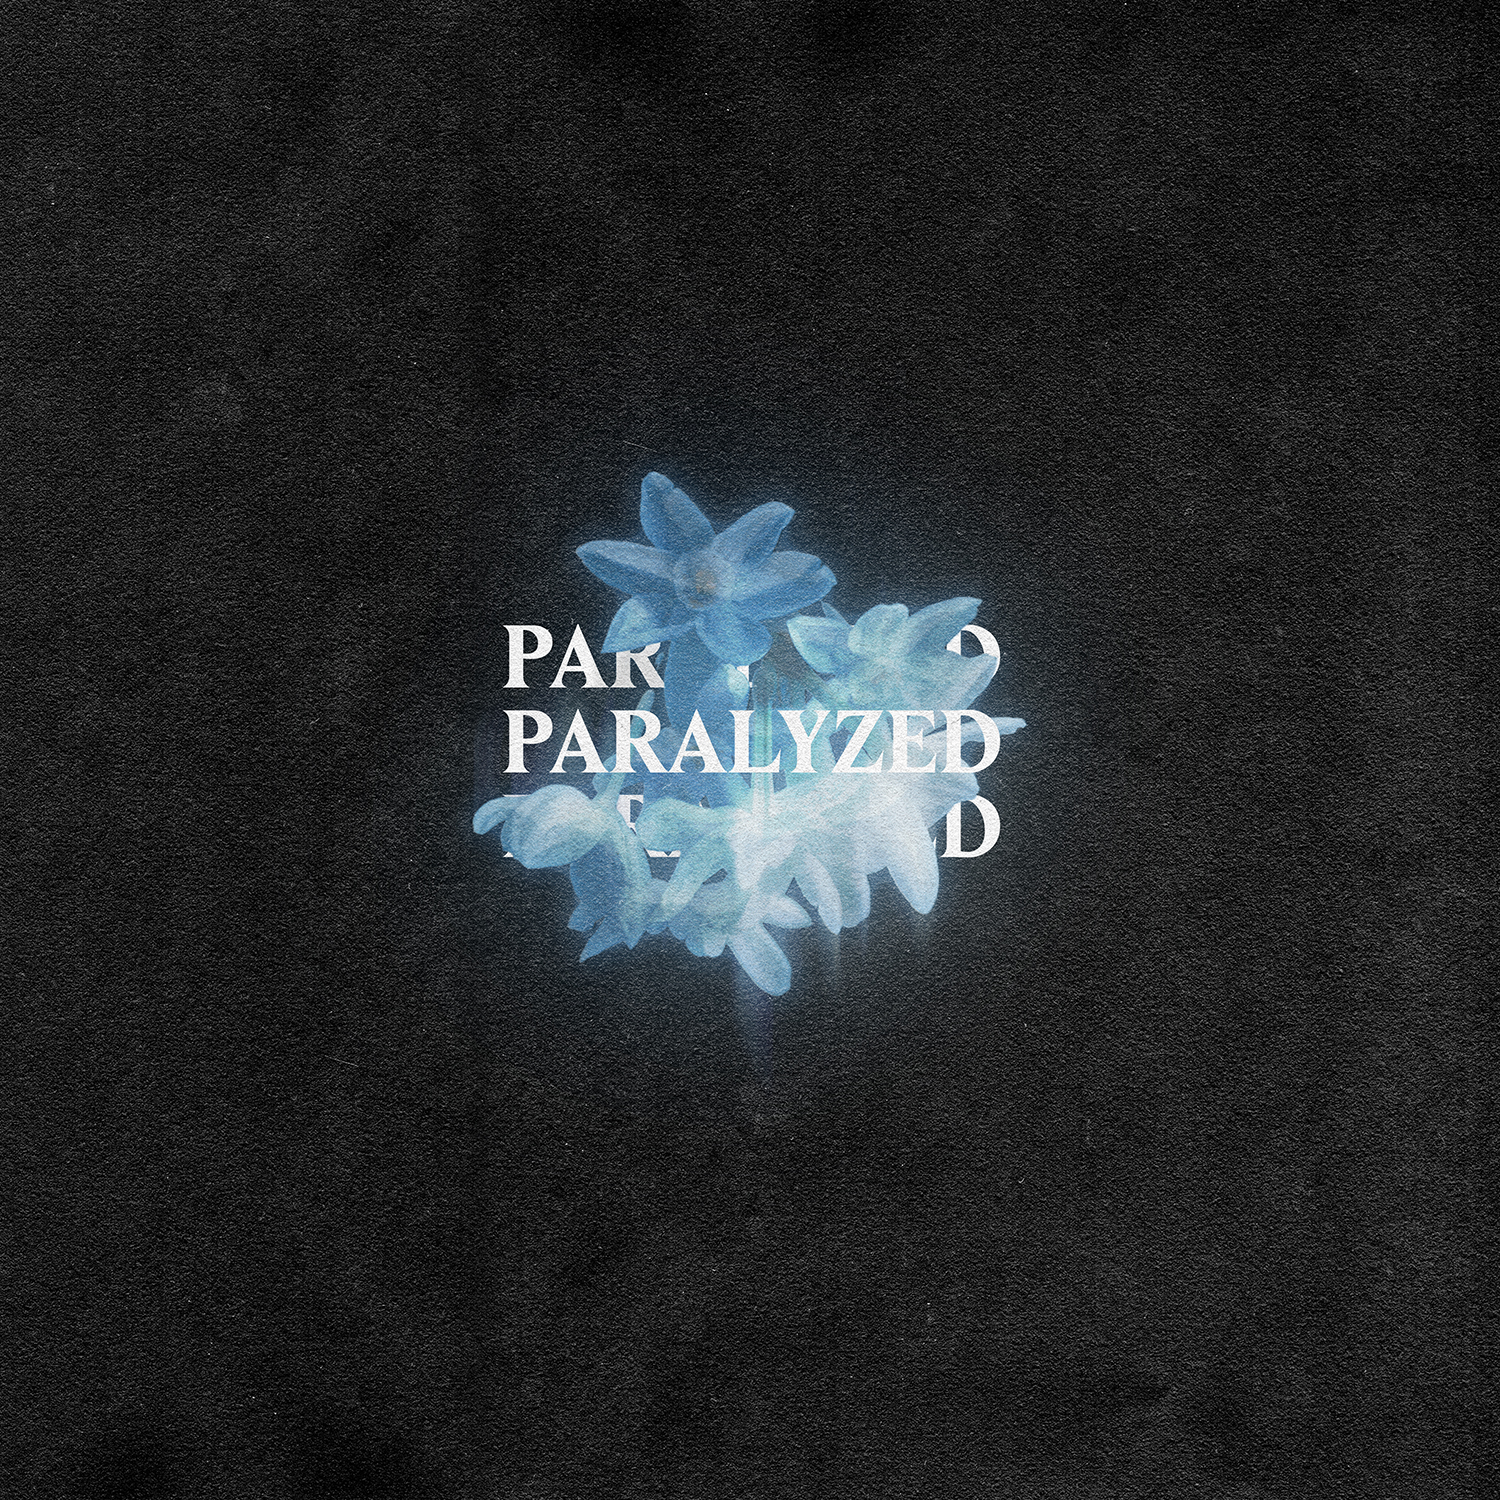 Imminience Paralyzed artwork arising empire